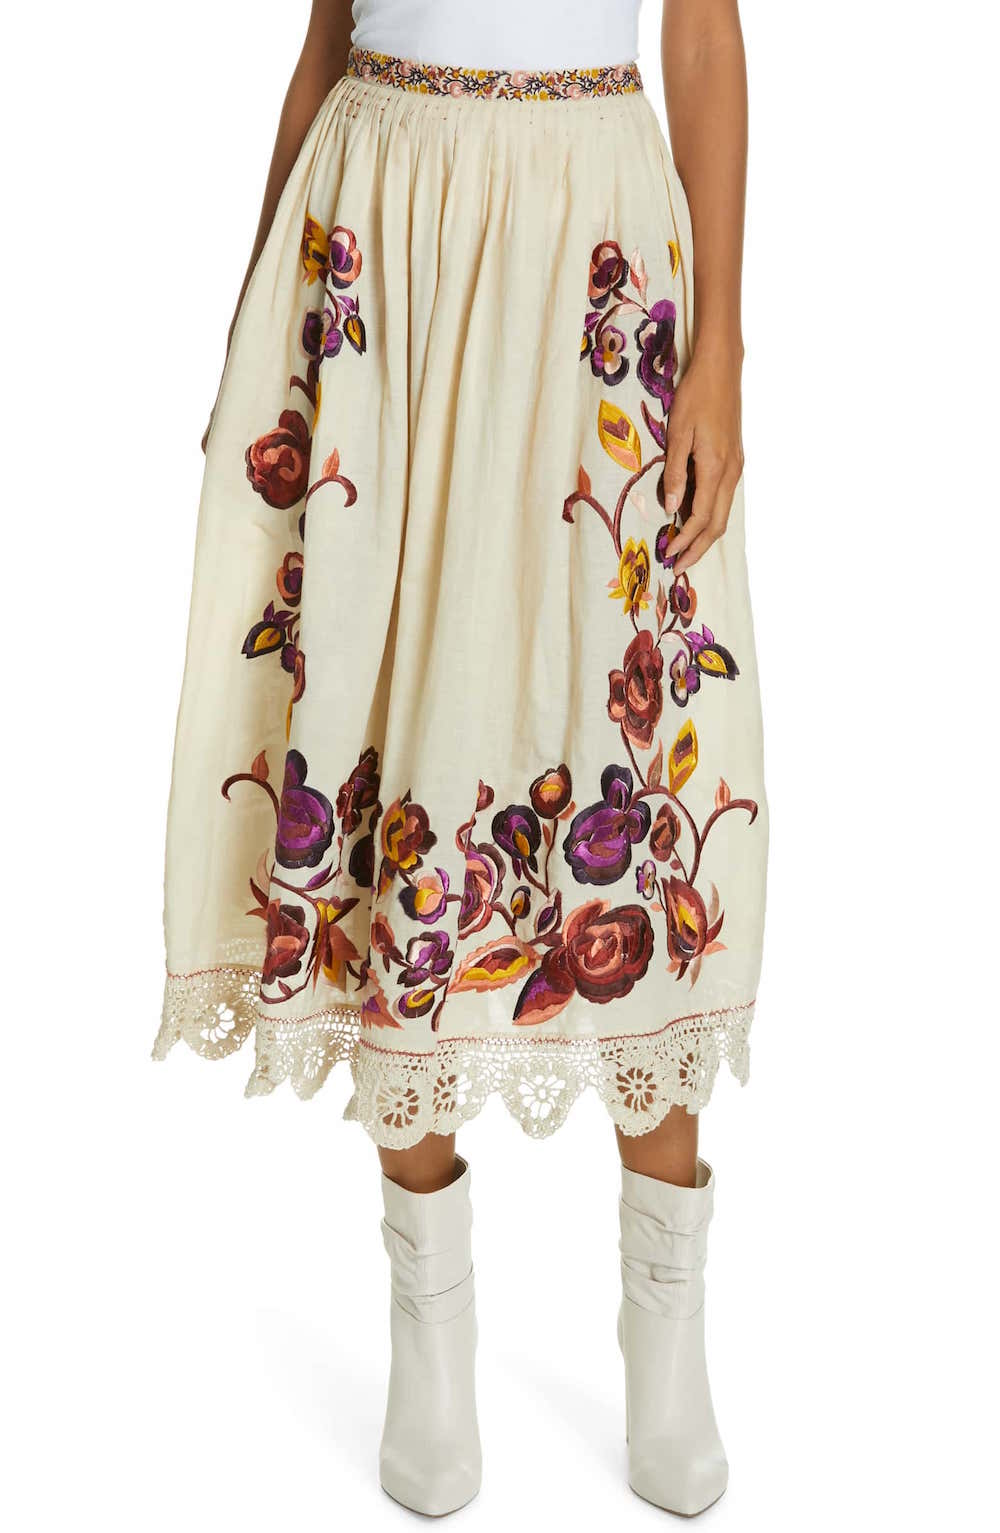 Ulla Johnson  27 Midi Skirts You Need in Your Closet ASAP Ulla Johnson Floral